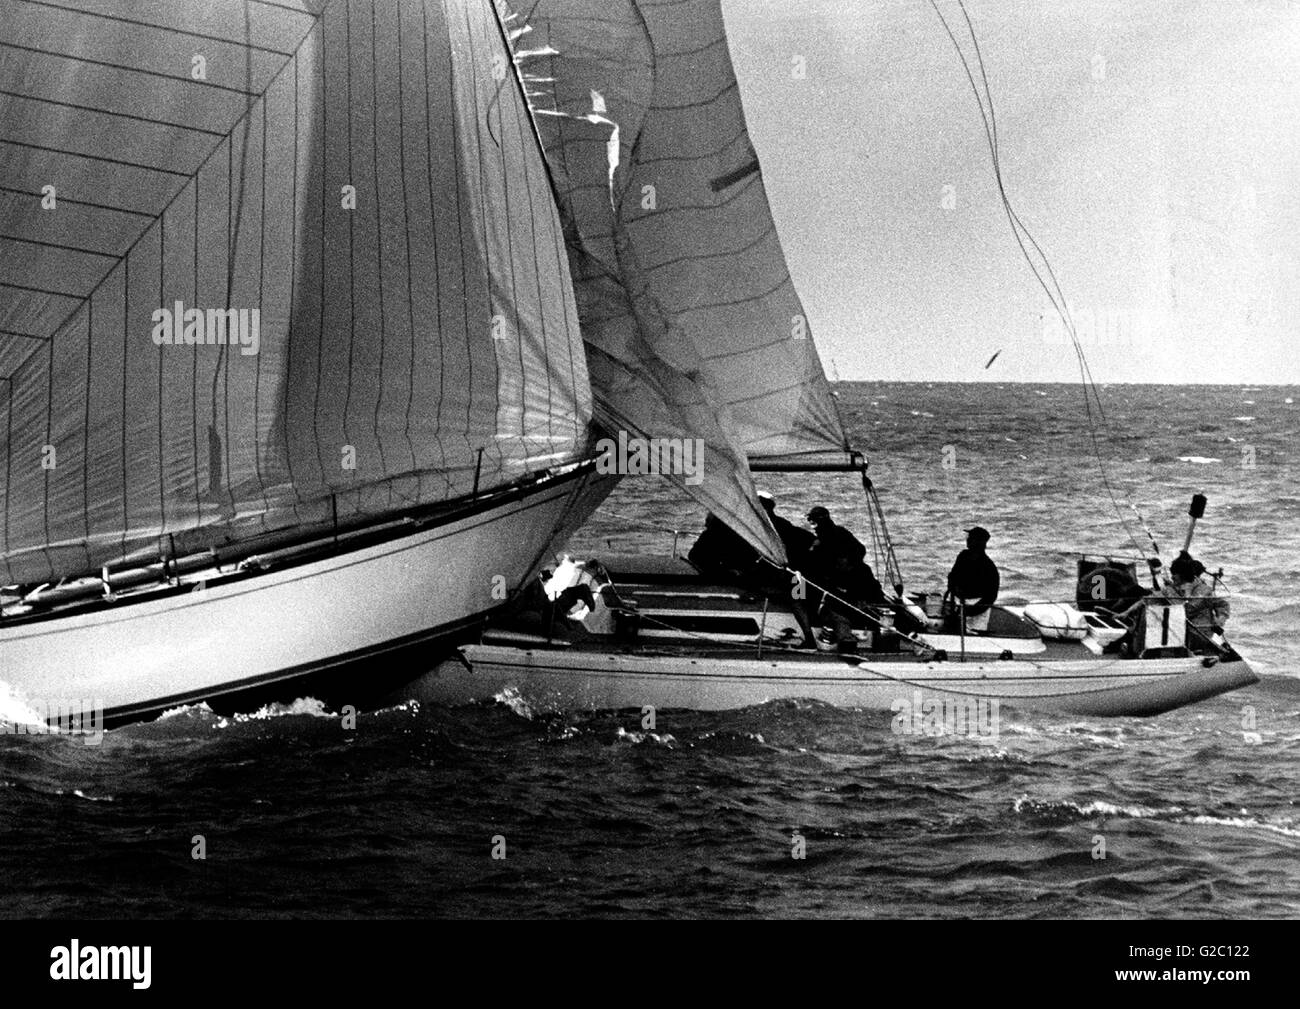 AJAX NEWS PHOTOS.1973. COWES, ISLE OF WIGHT, ENGLAND. - COWES COLLISION - NEAR DEATH MISS - CREWMAN ON GRIFFIN III - Stock Image